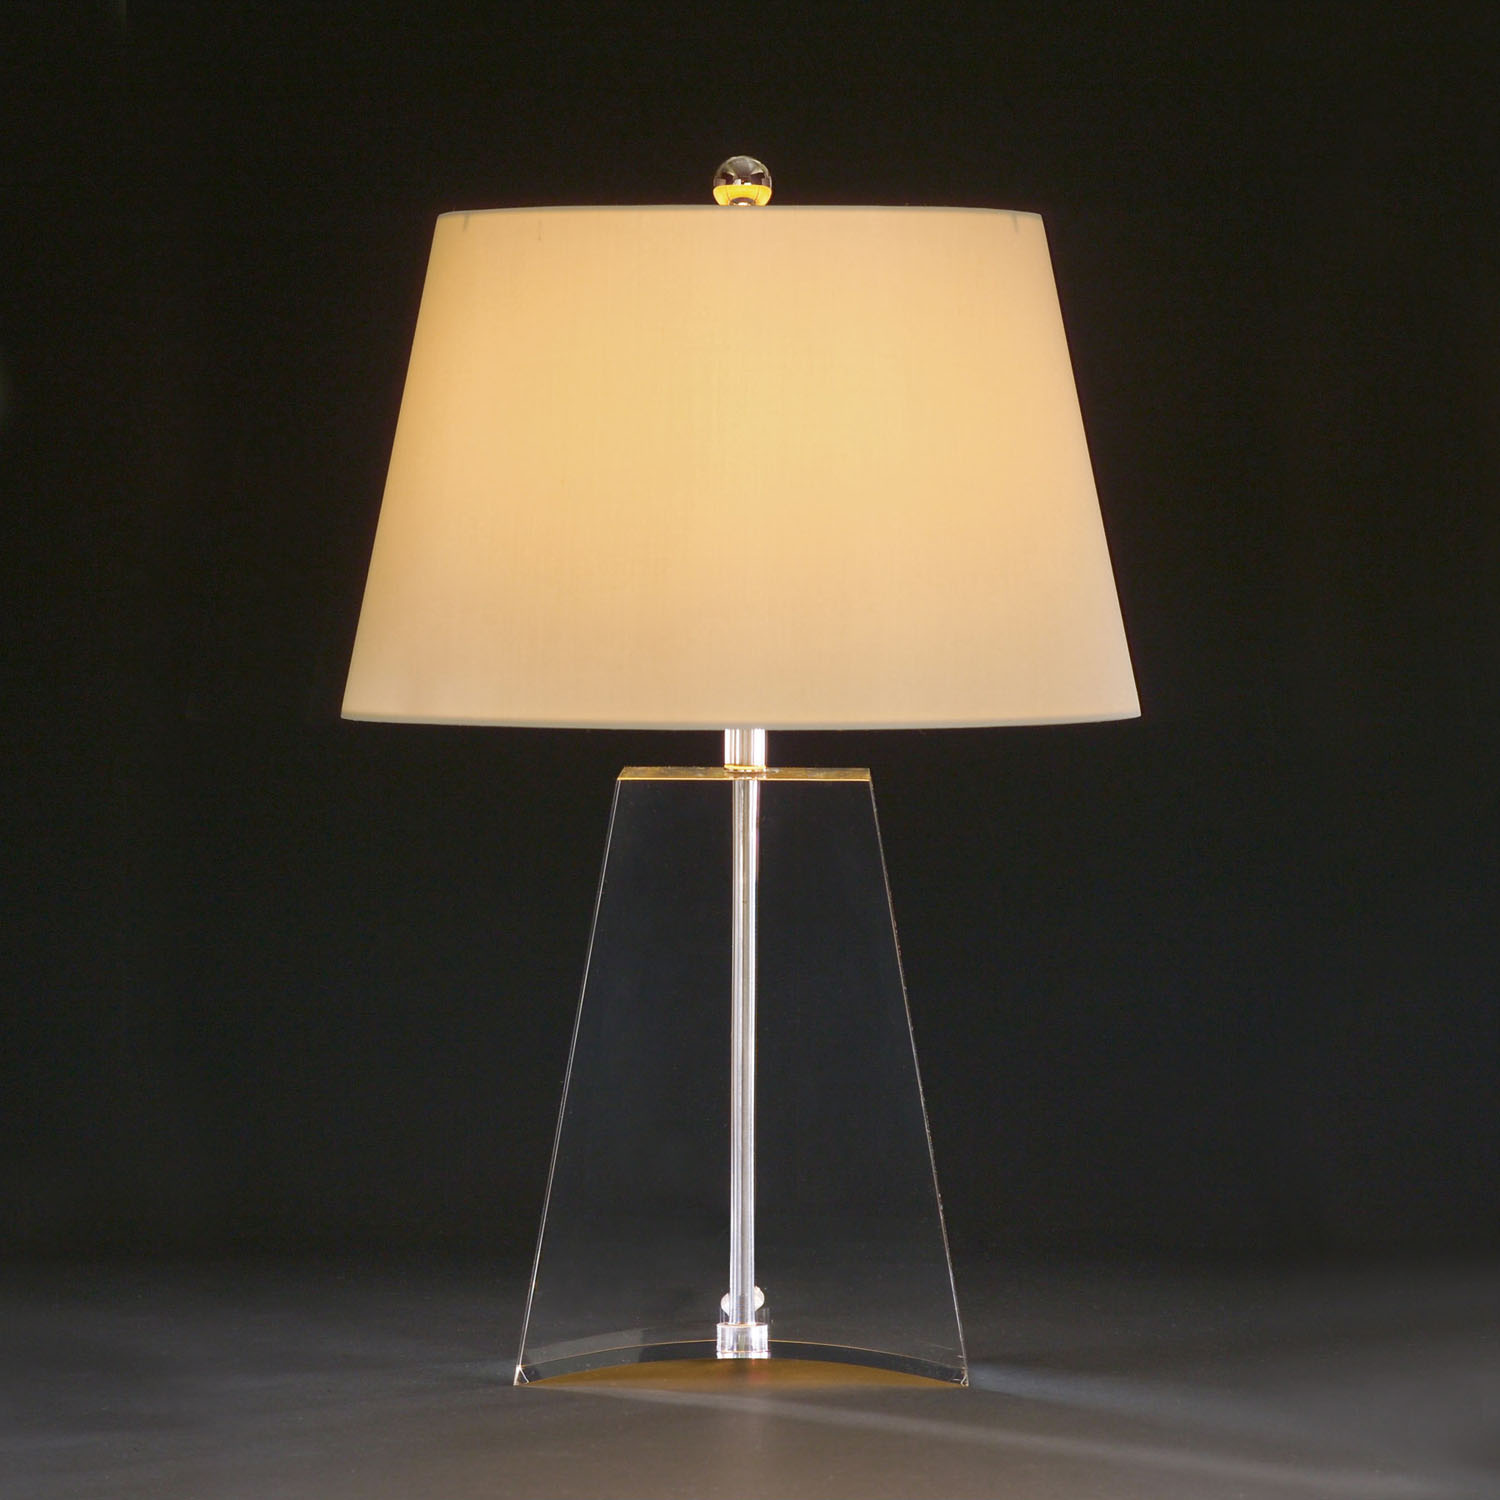 acrylic lamps  an array of styles and designs  warisan lighting - layout